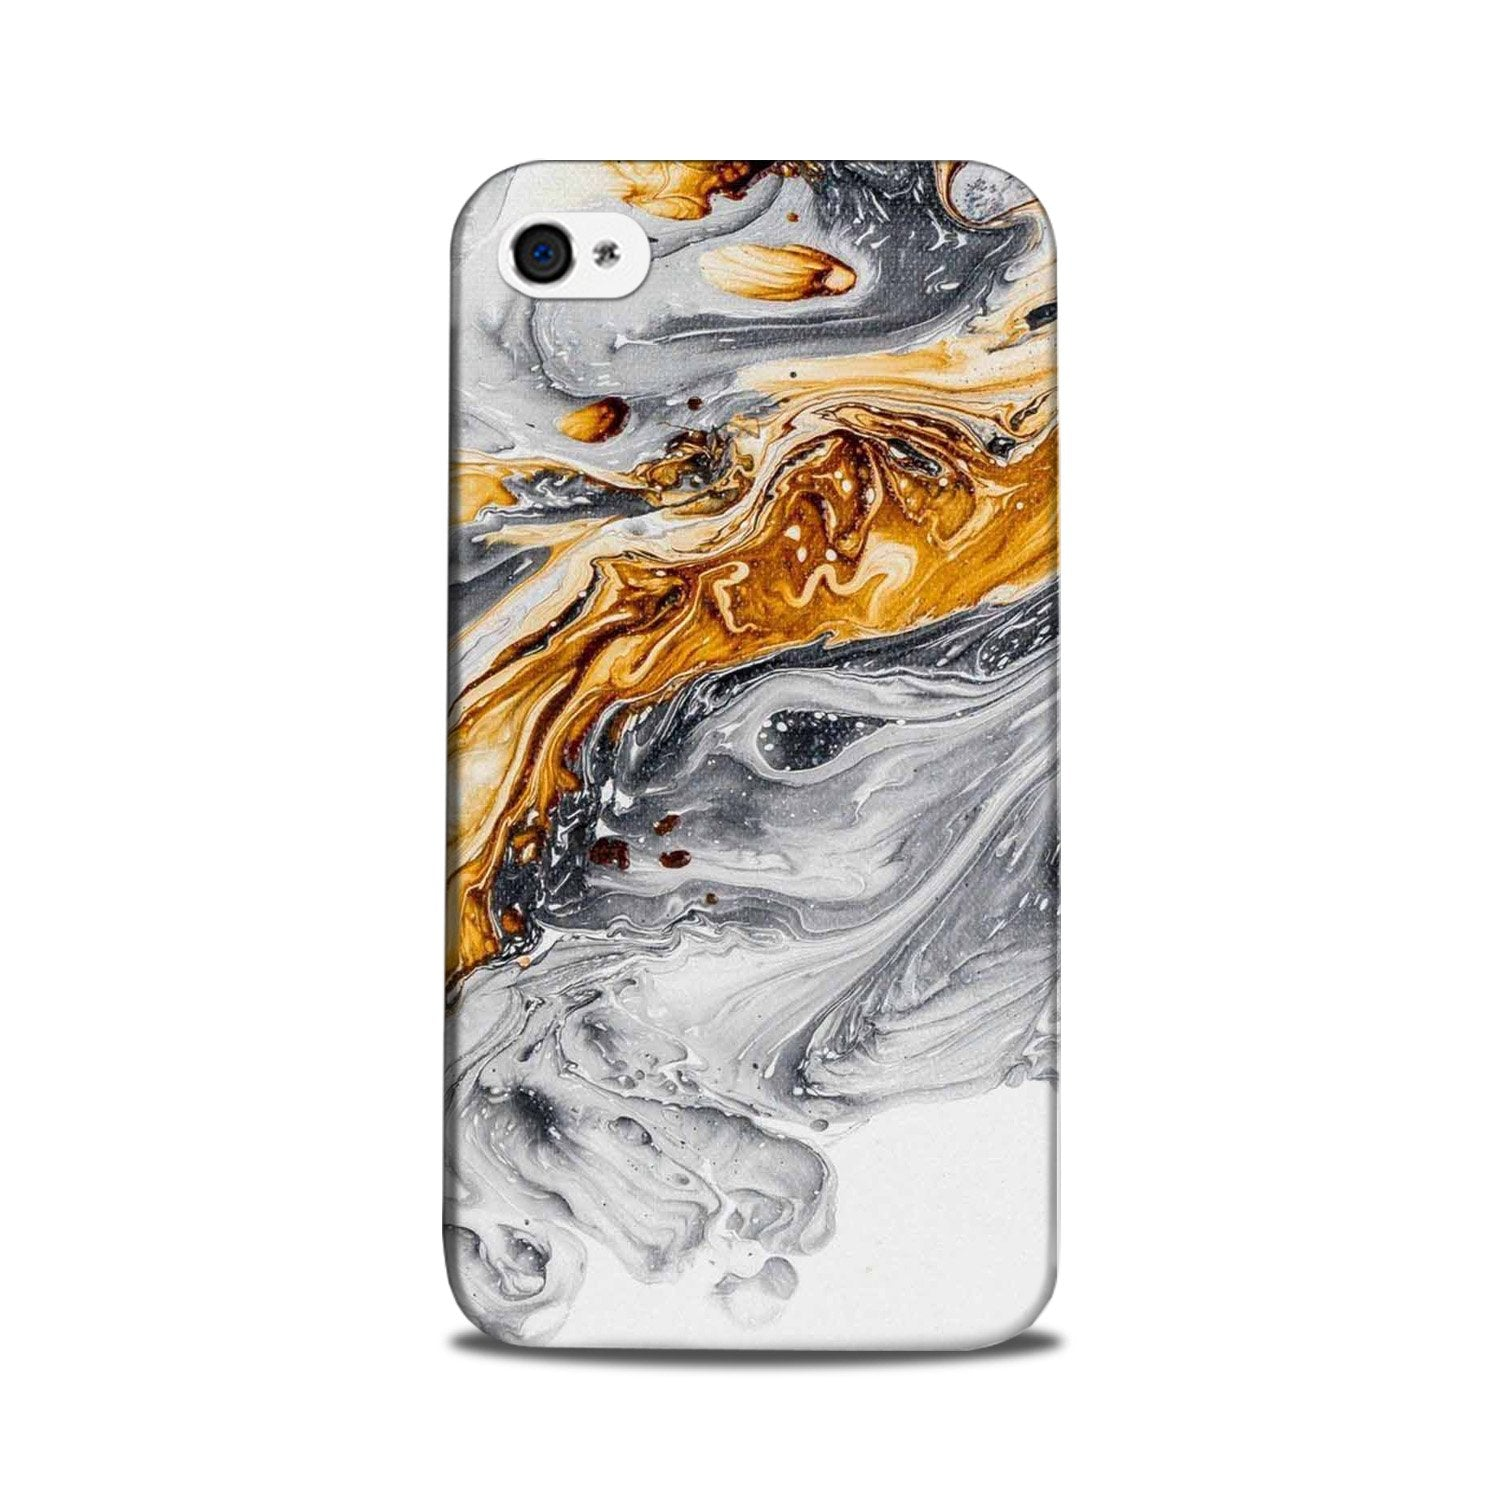 Marble Texture Mobile Back Case for iPhone 5/ 5s  (Design - 310)